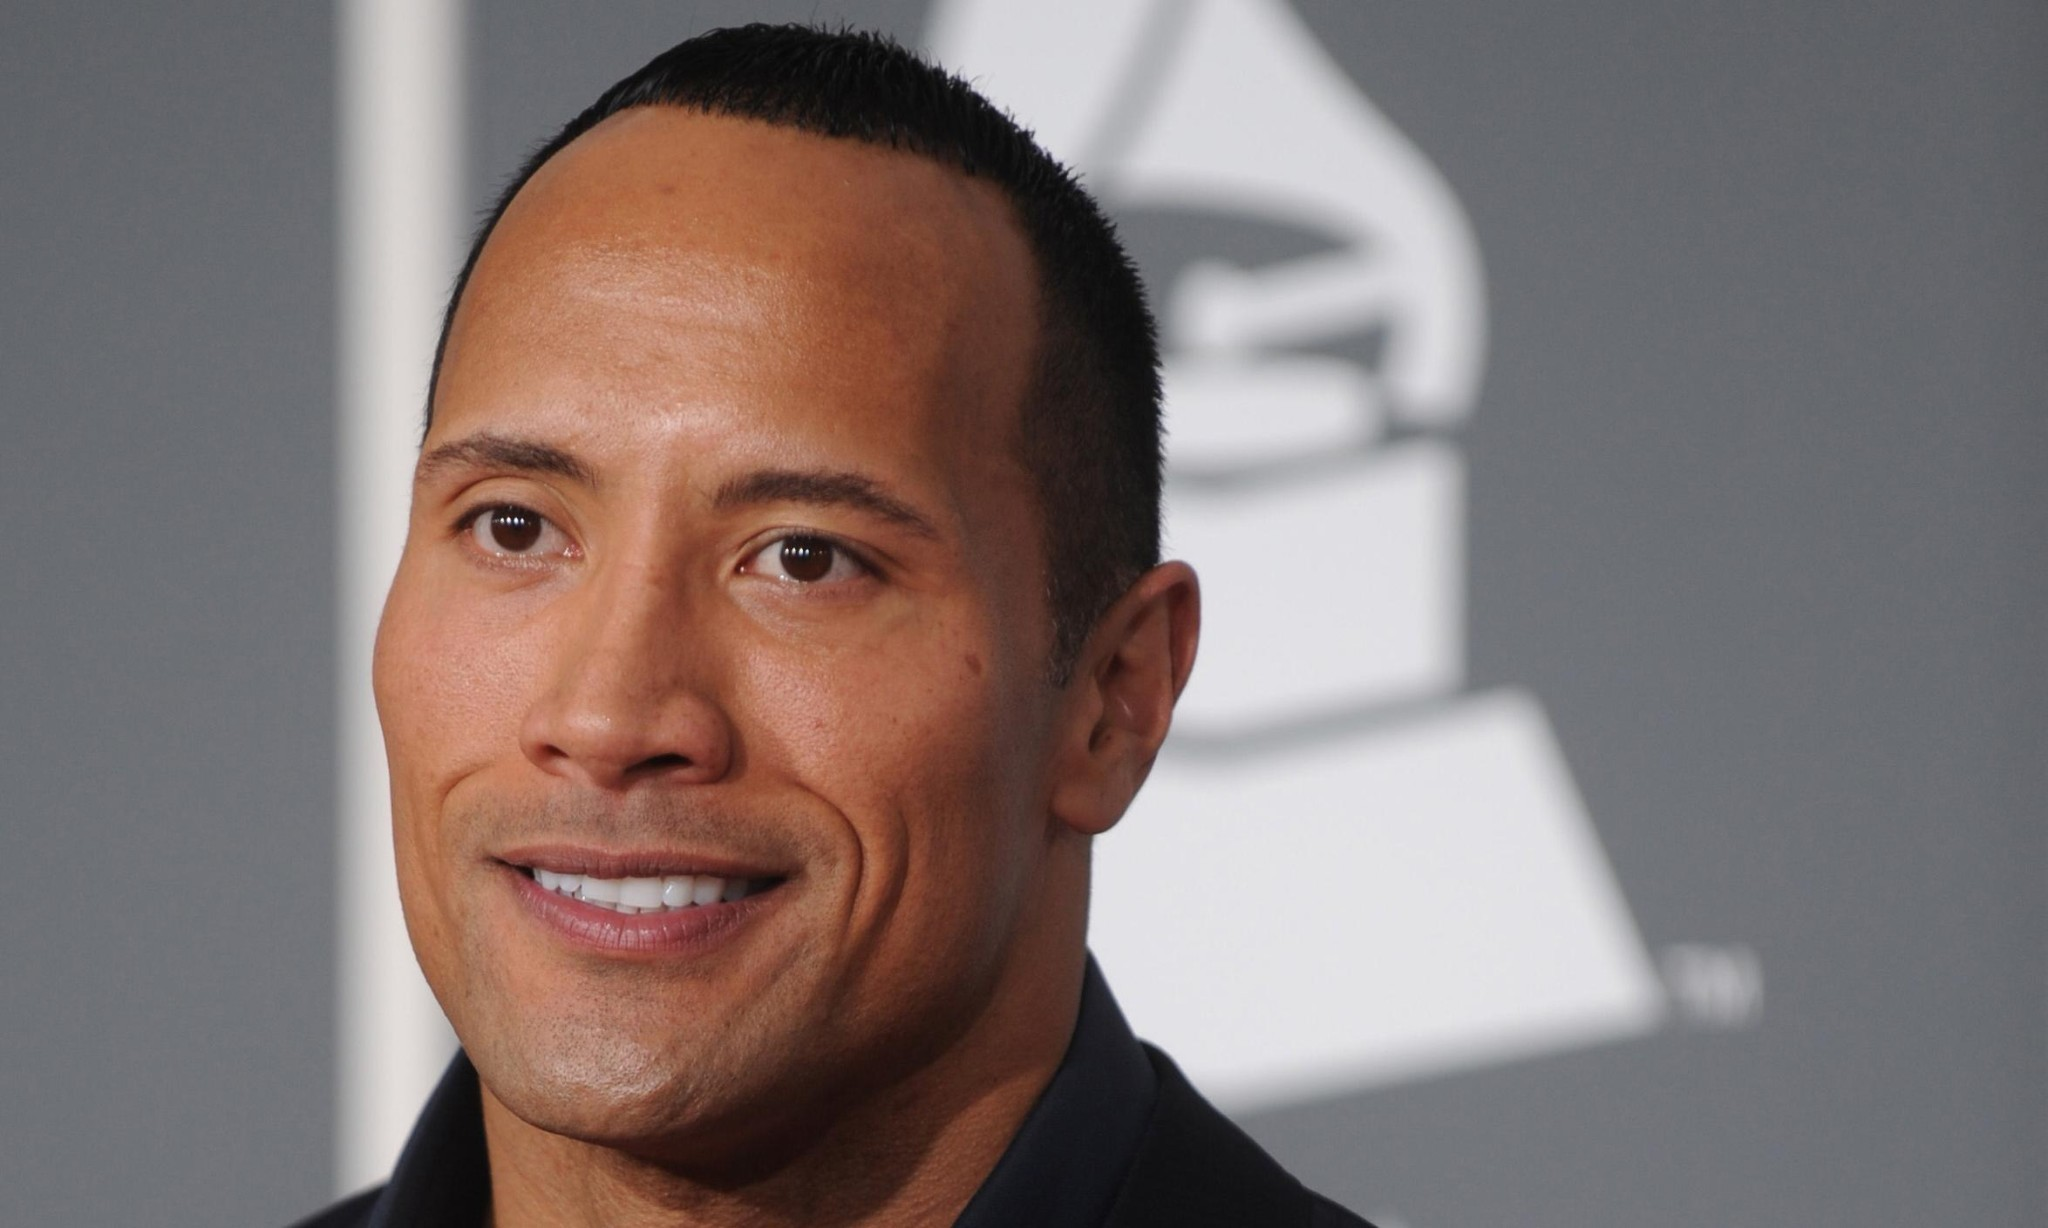 Dwayne 'The Rock' Johnson is the world's highest paid actor, and rightly so